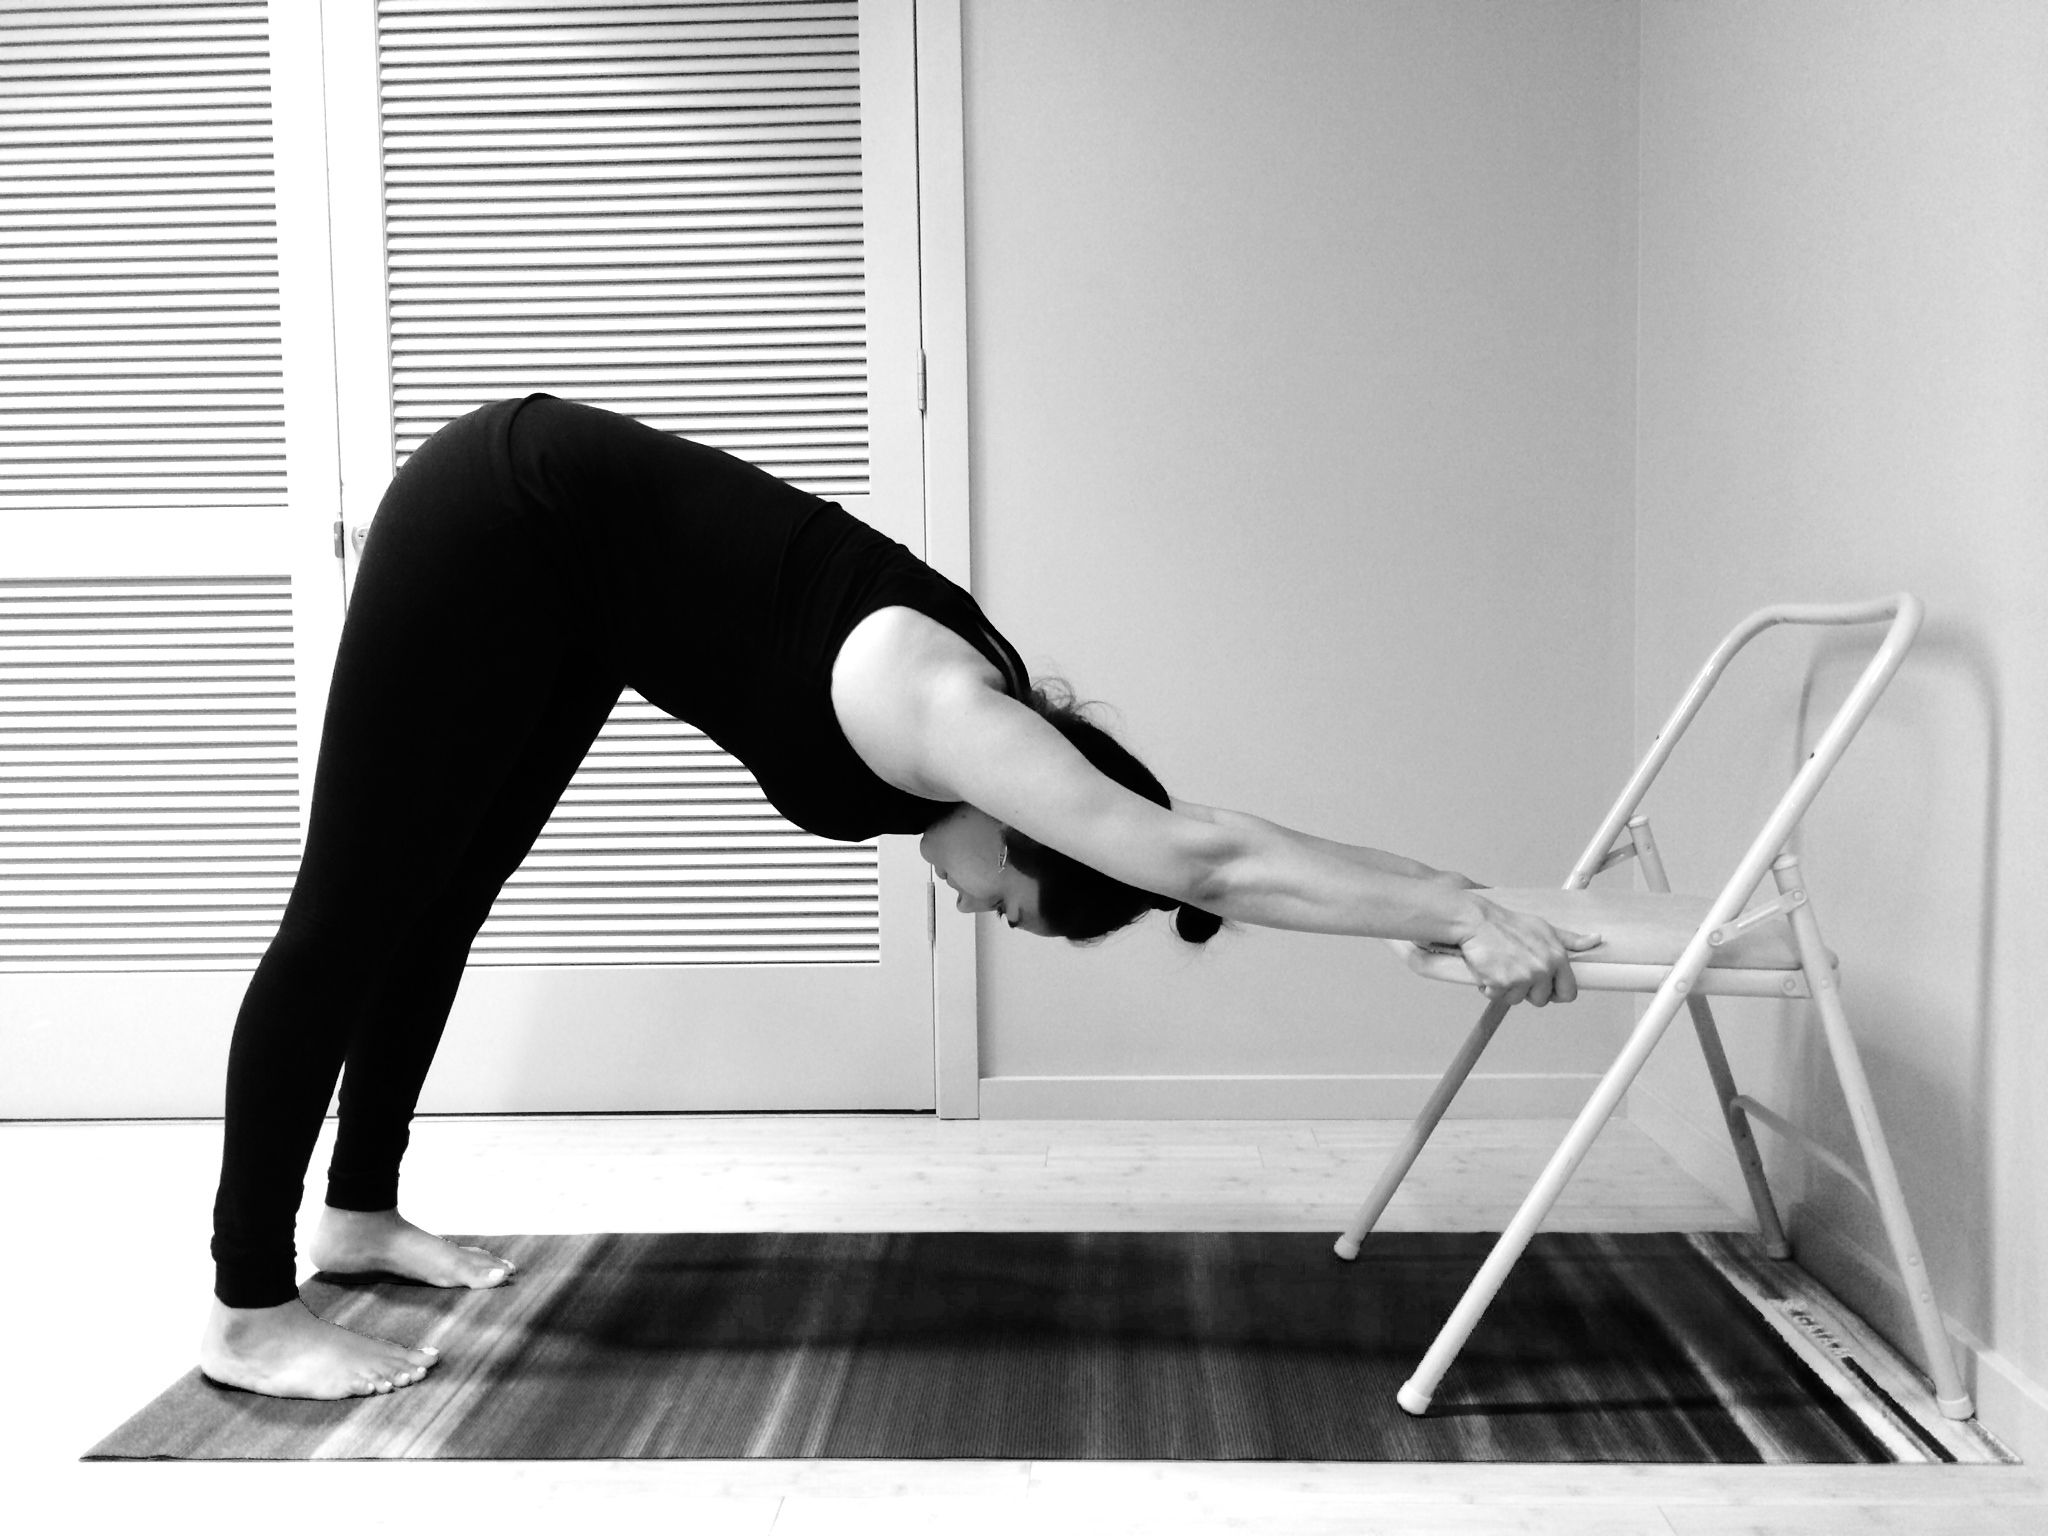 A Chair for Yoga Raising Yoga Awareness